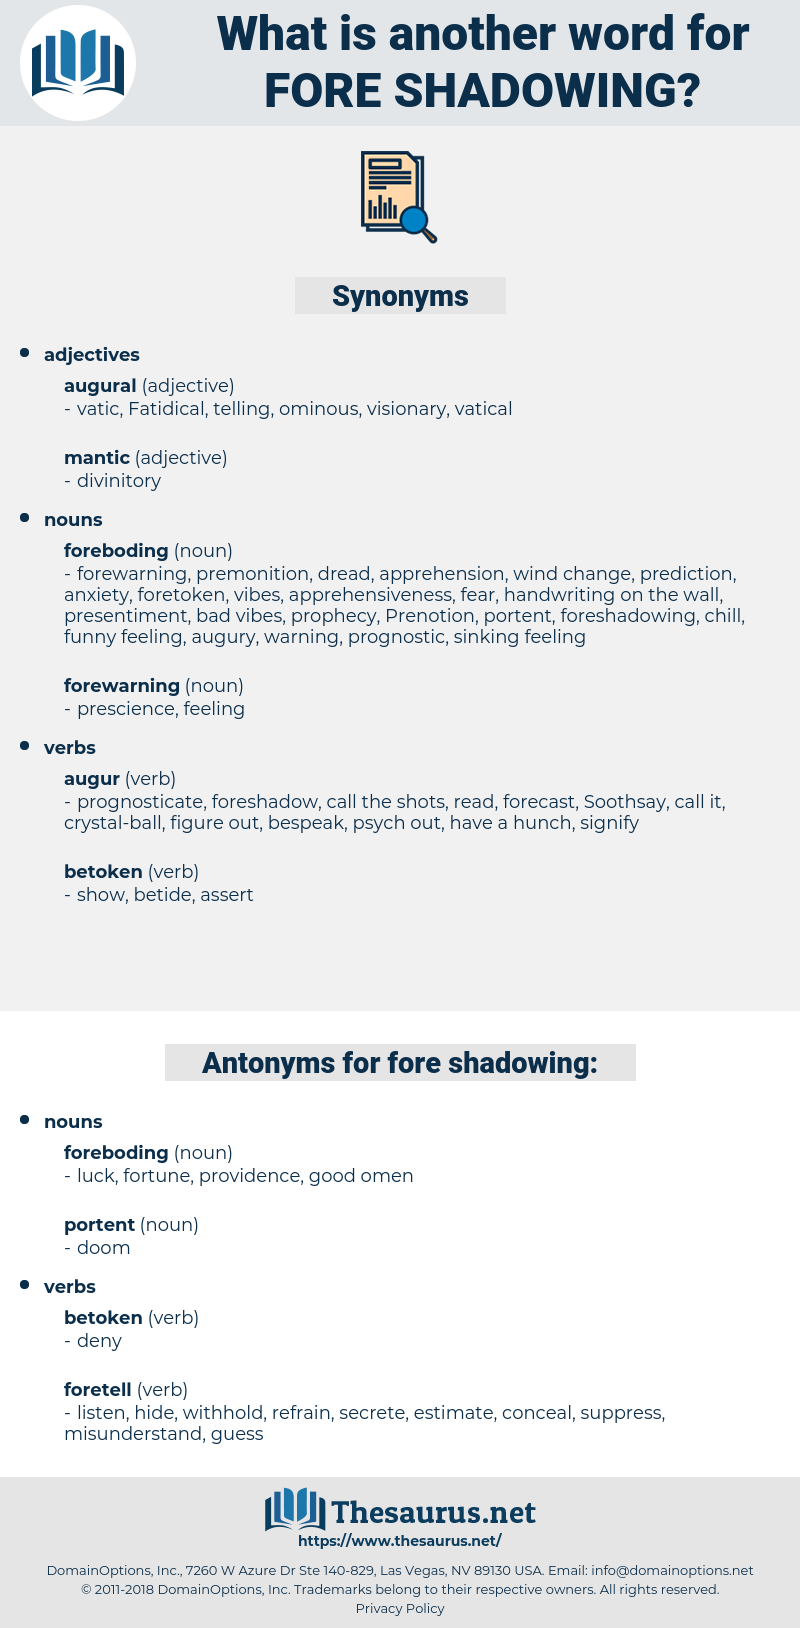 fore-shadowing, synonym fore-shadowing, another word for fore-shadowing, words like fore-shadowing, thesaurus fore-shadowing